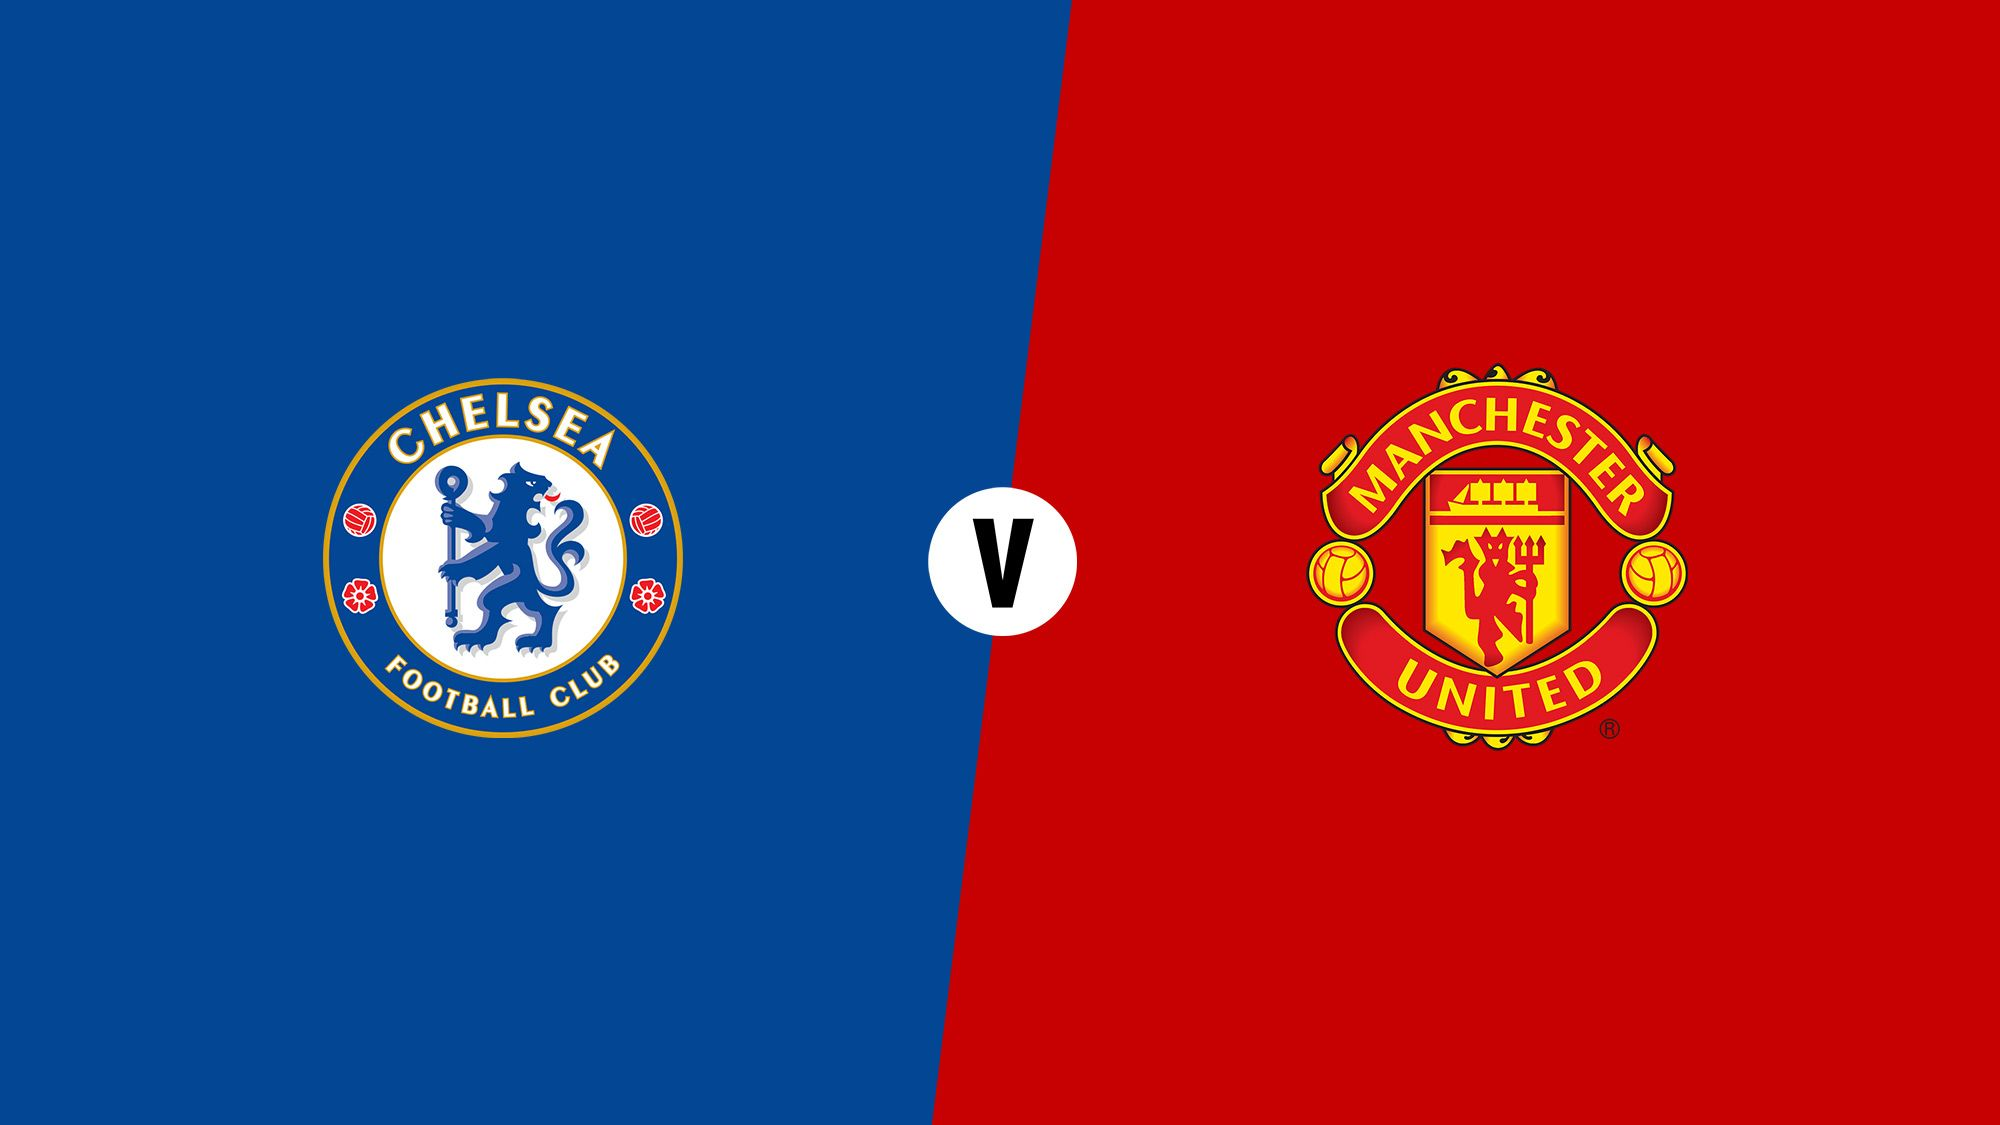 Preview Chelsea V Manchester United Official Manchester United Website Manchester United Manchester United Premier League Cup Final